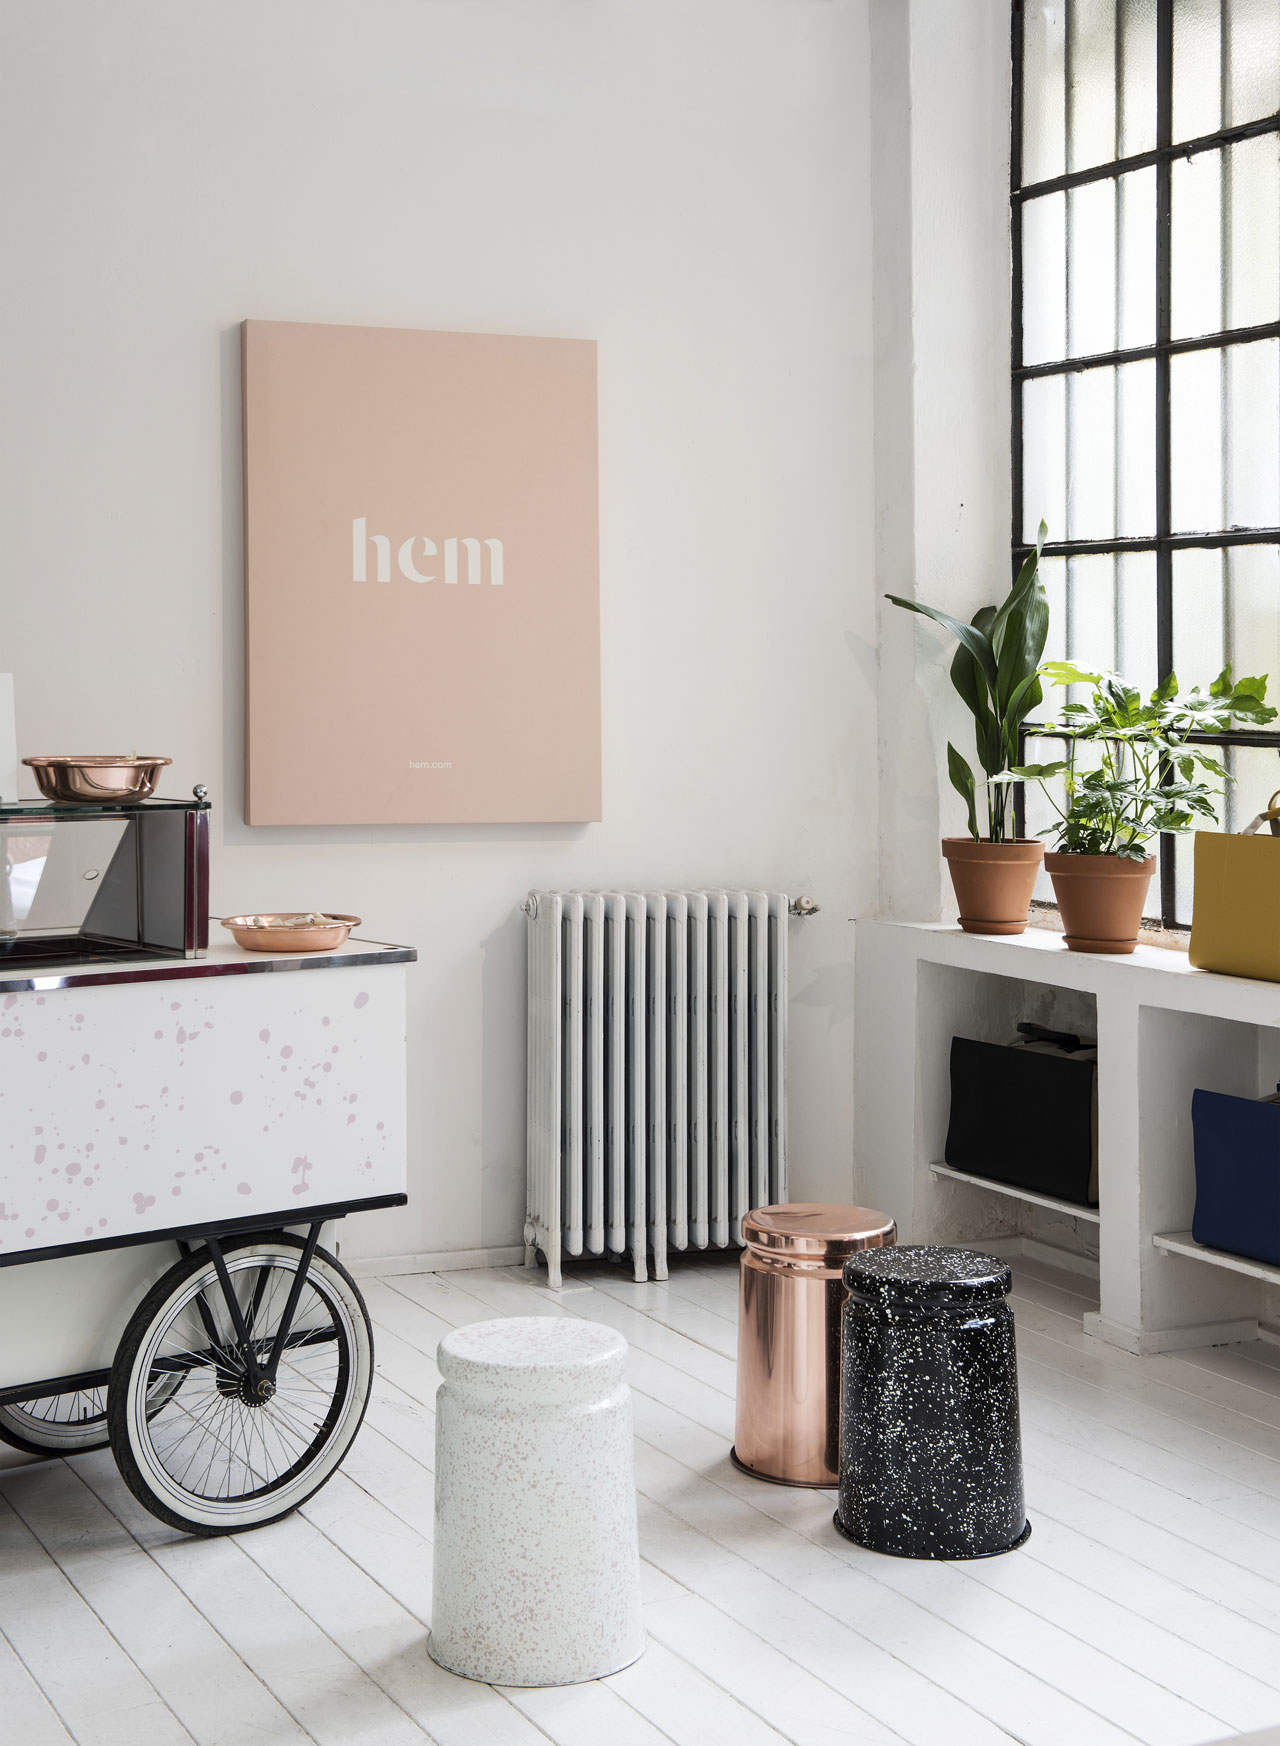 "Hem's products launch in Milan this year celebrated the Italian tradition of gathering... ""Ice Cream Social"" installation preview inspired by gathering, sharing and socialising. Photo by Erik Lefvander."